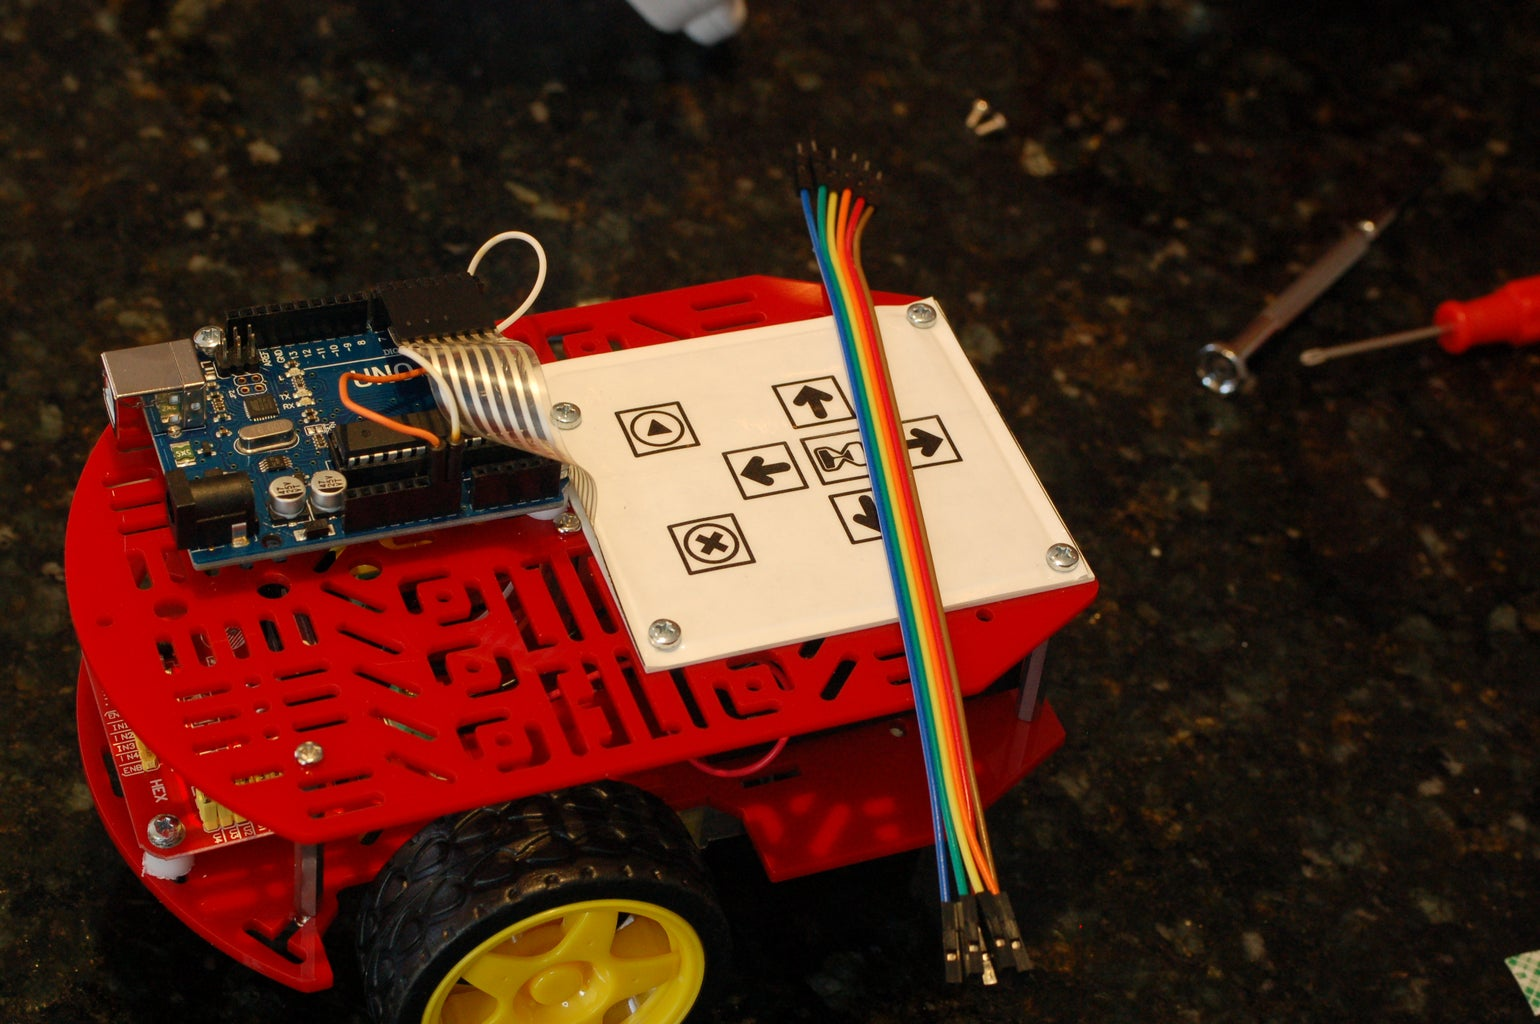 Connect the Motor Driver to Logic Pins of the Arduino